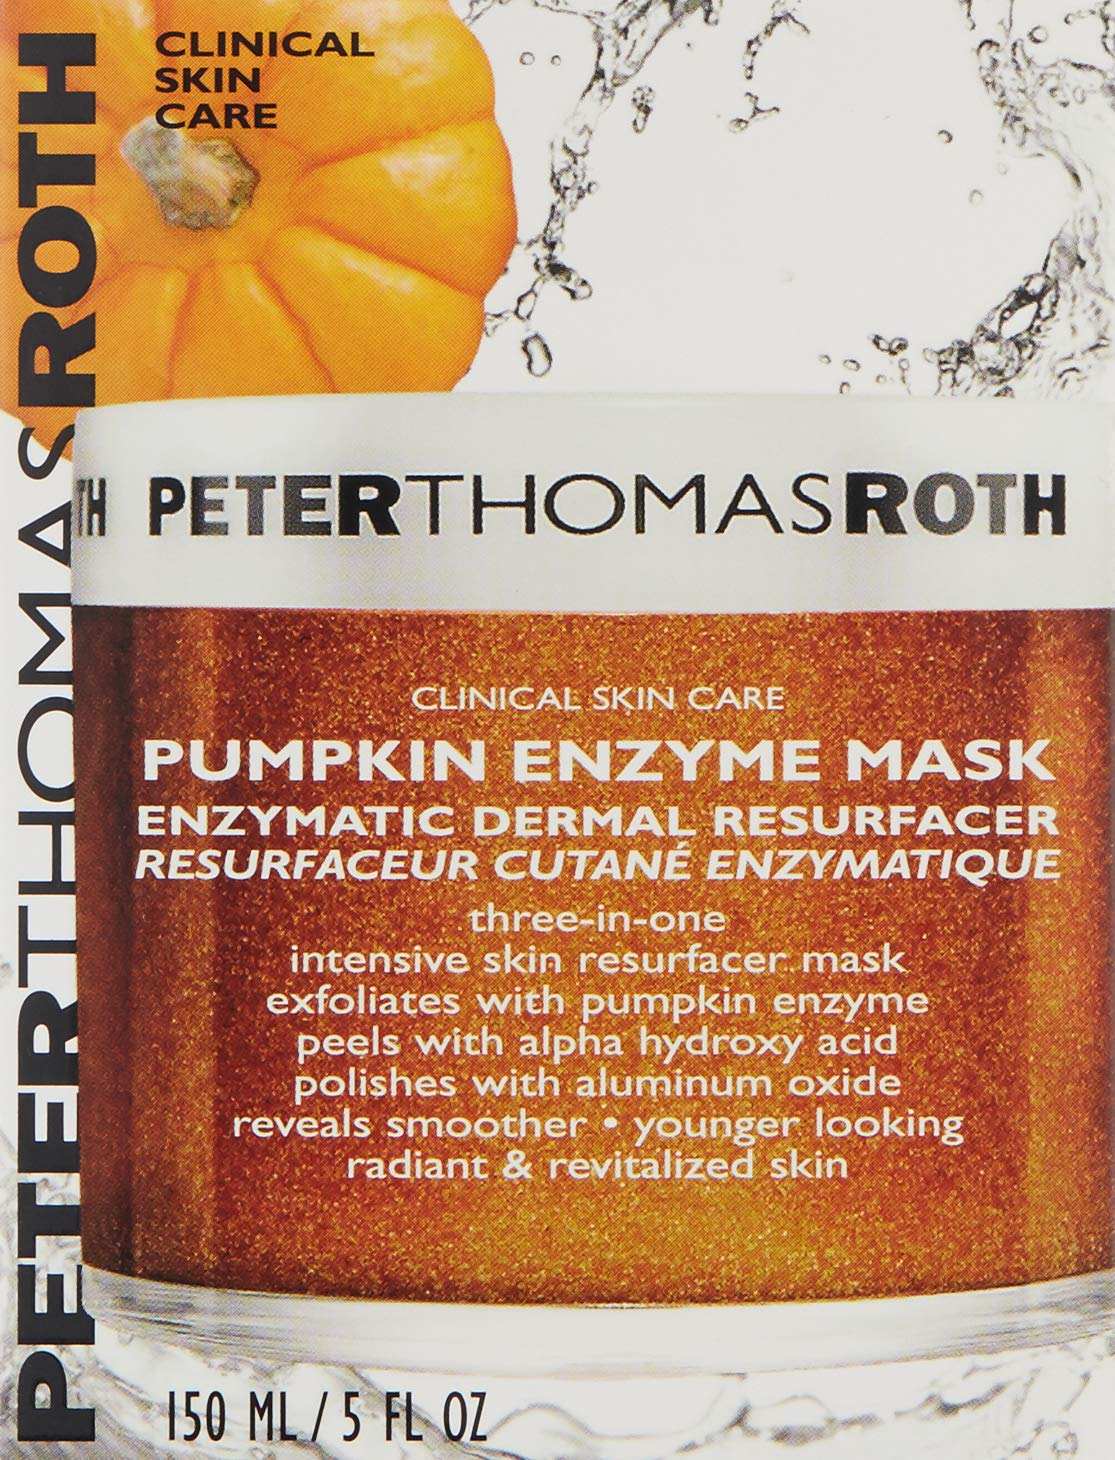 Peter Thomas Roth Pumpkin Enzyme Mask, 5 fl. oz. by Peter Thomas Roth (Image #4)